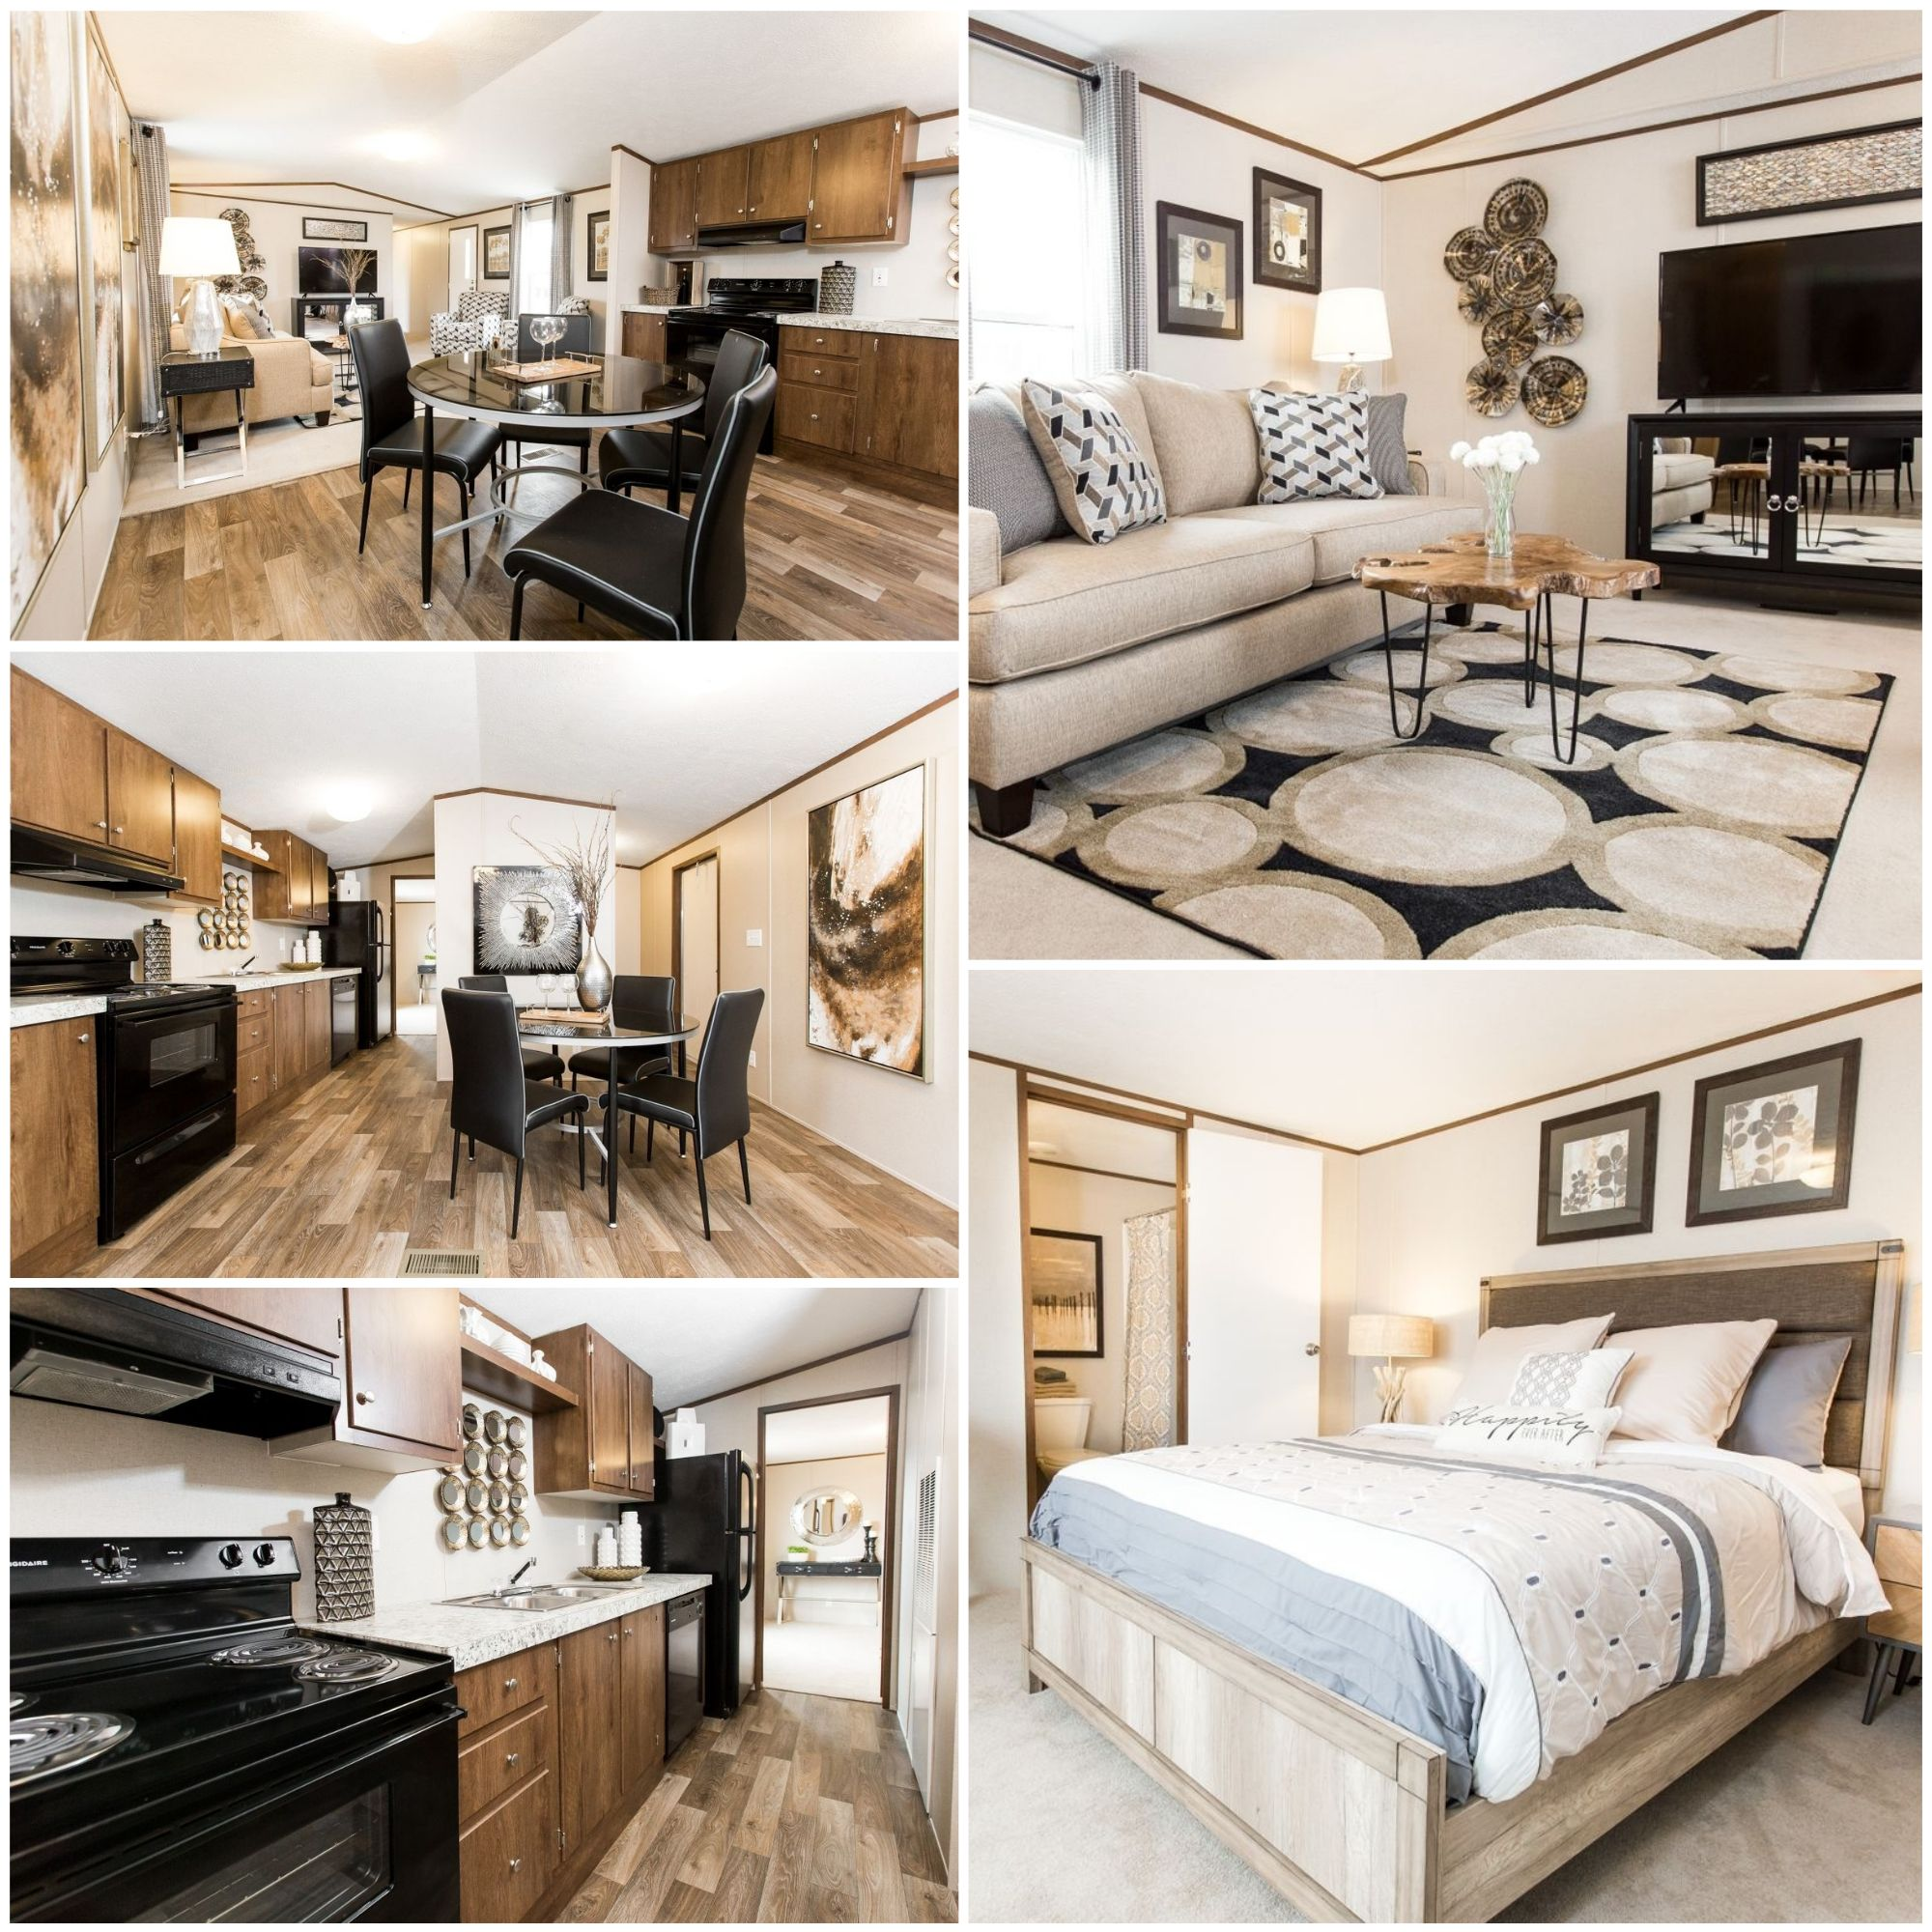 3/2 TruMH Euphoria in 2020 Single wide mobile homes